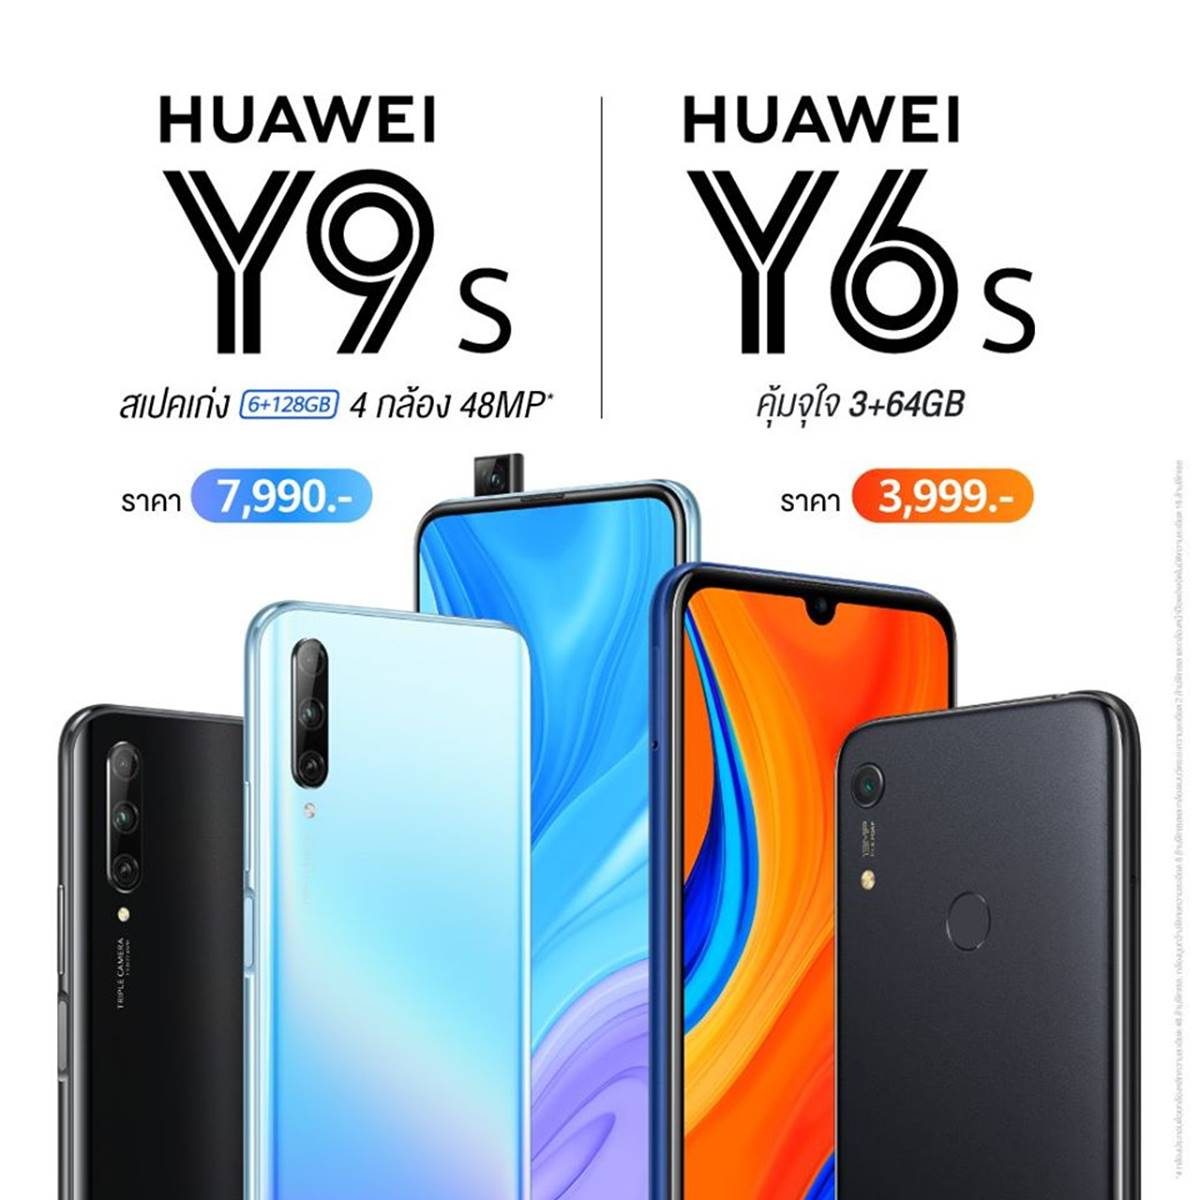 HUAWEI Y6s and HUAWEI Y9s